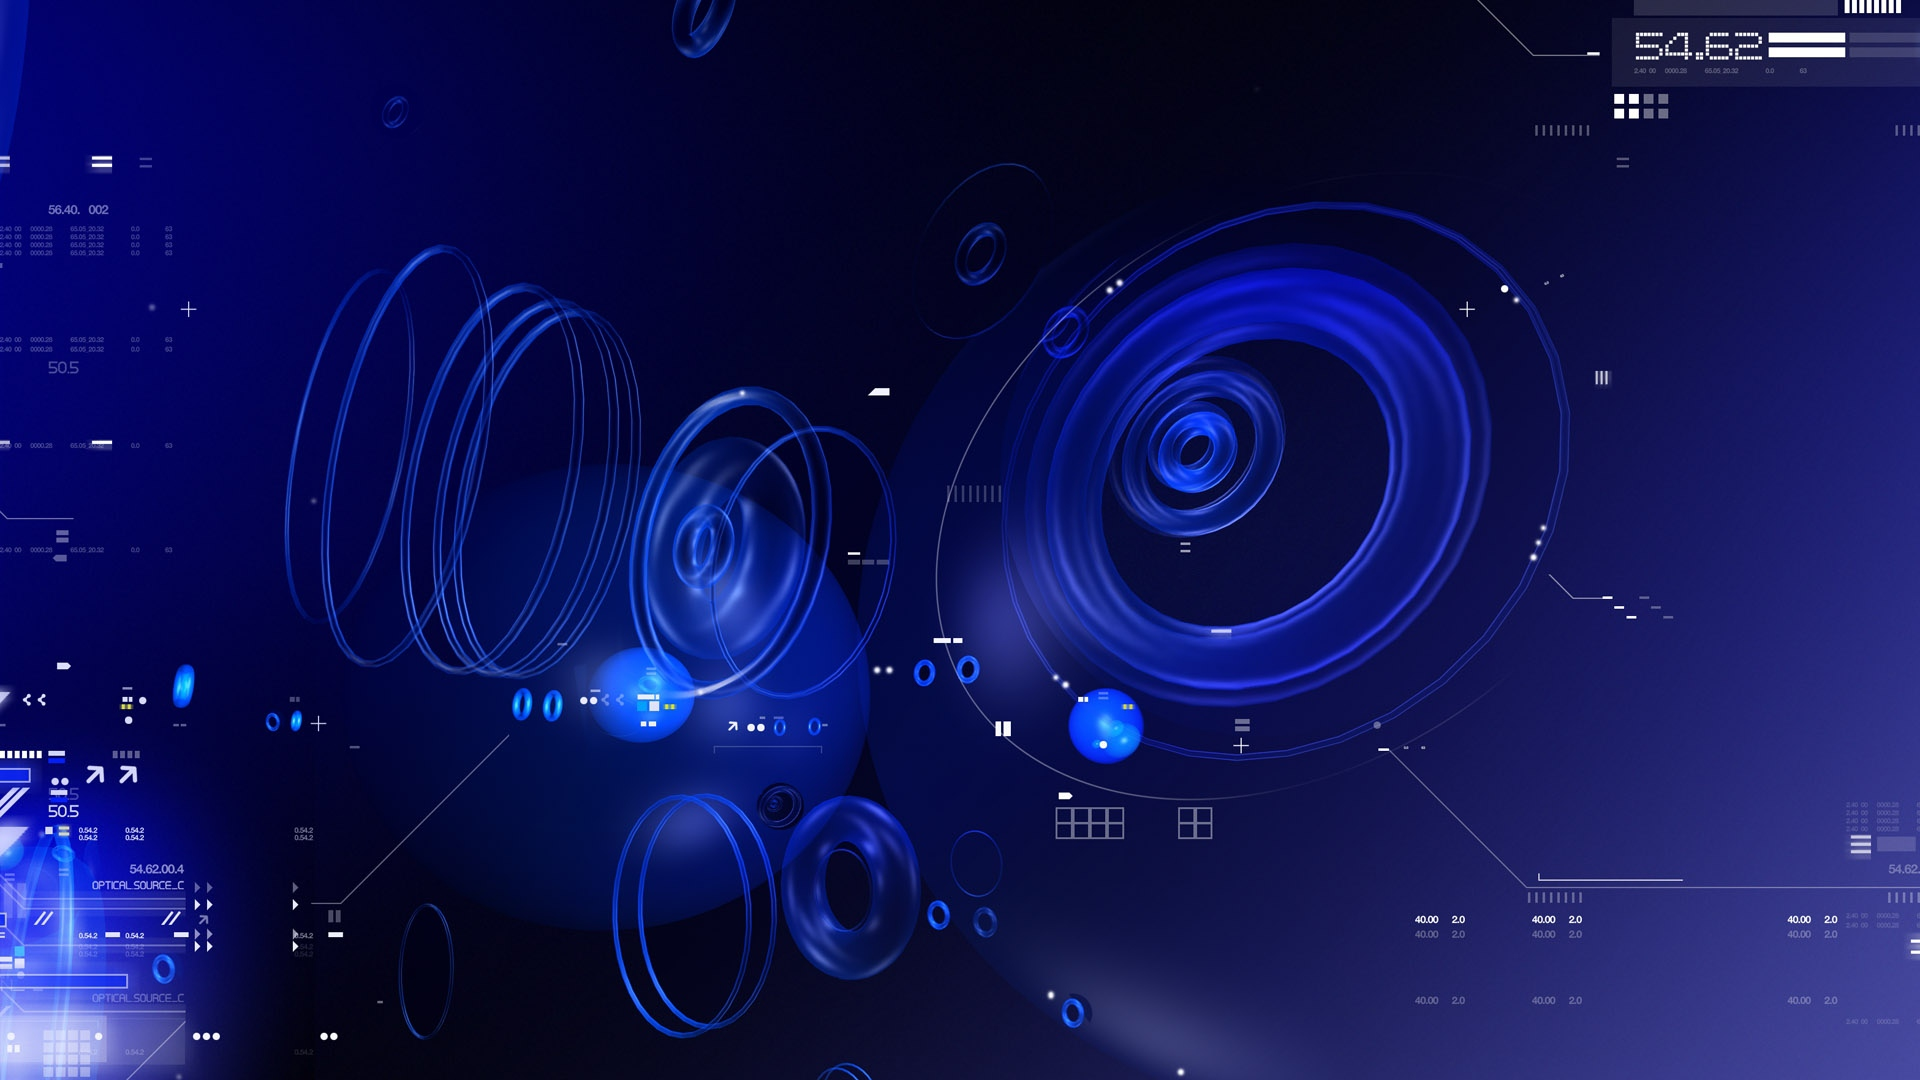 download wallpaper 1920x1080 blue black abstract white circles